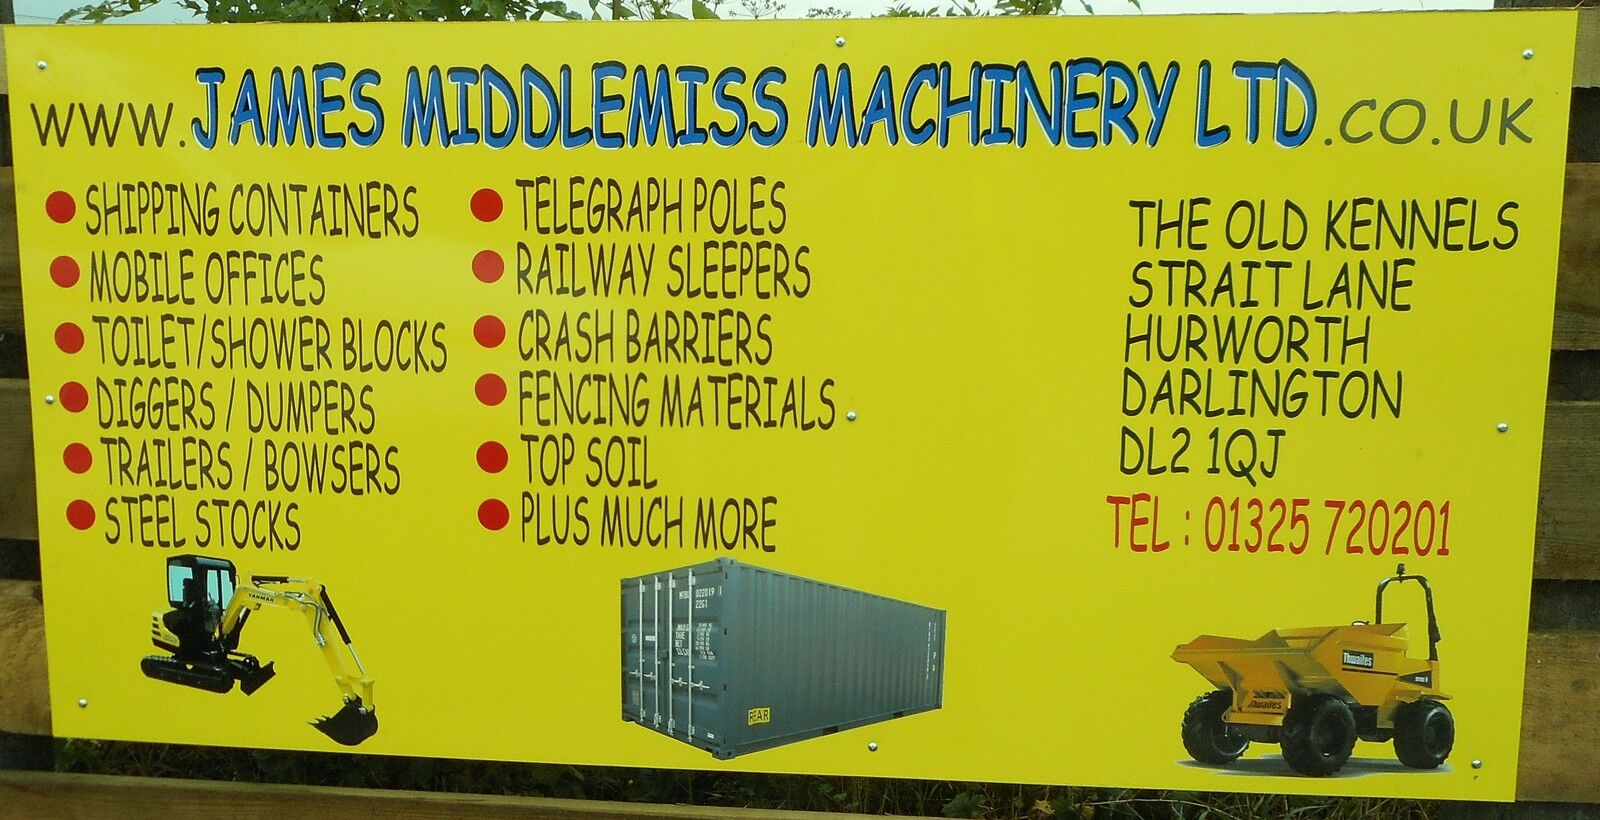 james.middlemiss.machinery.ltd